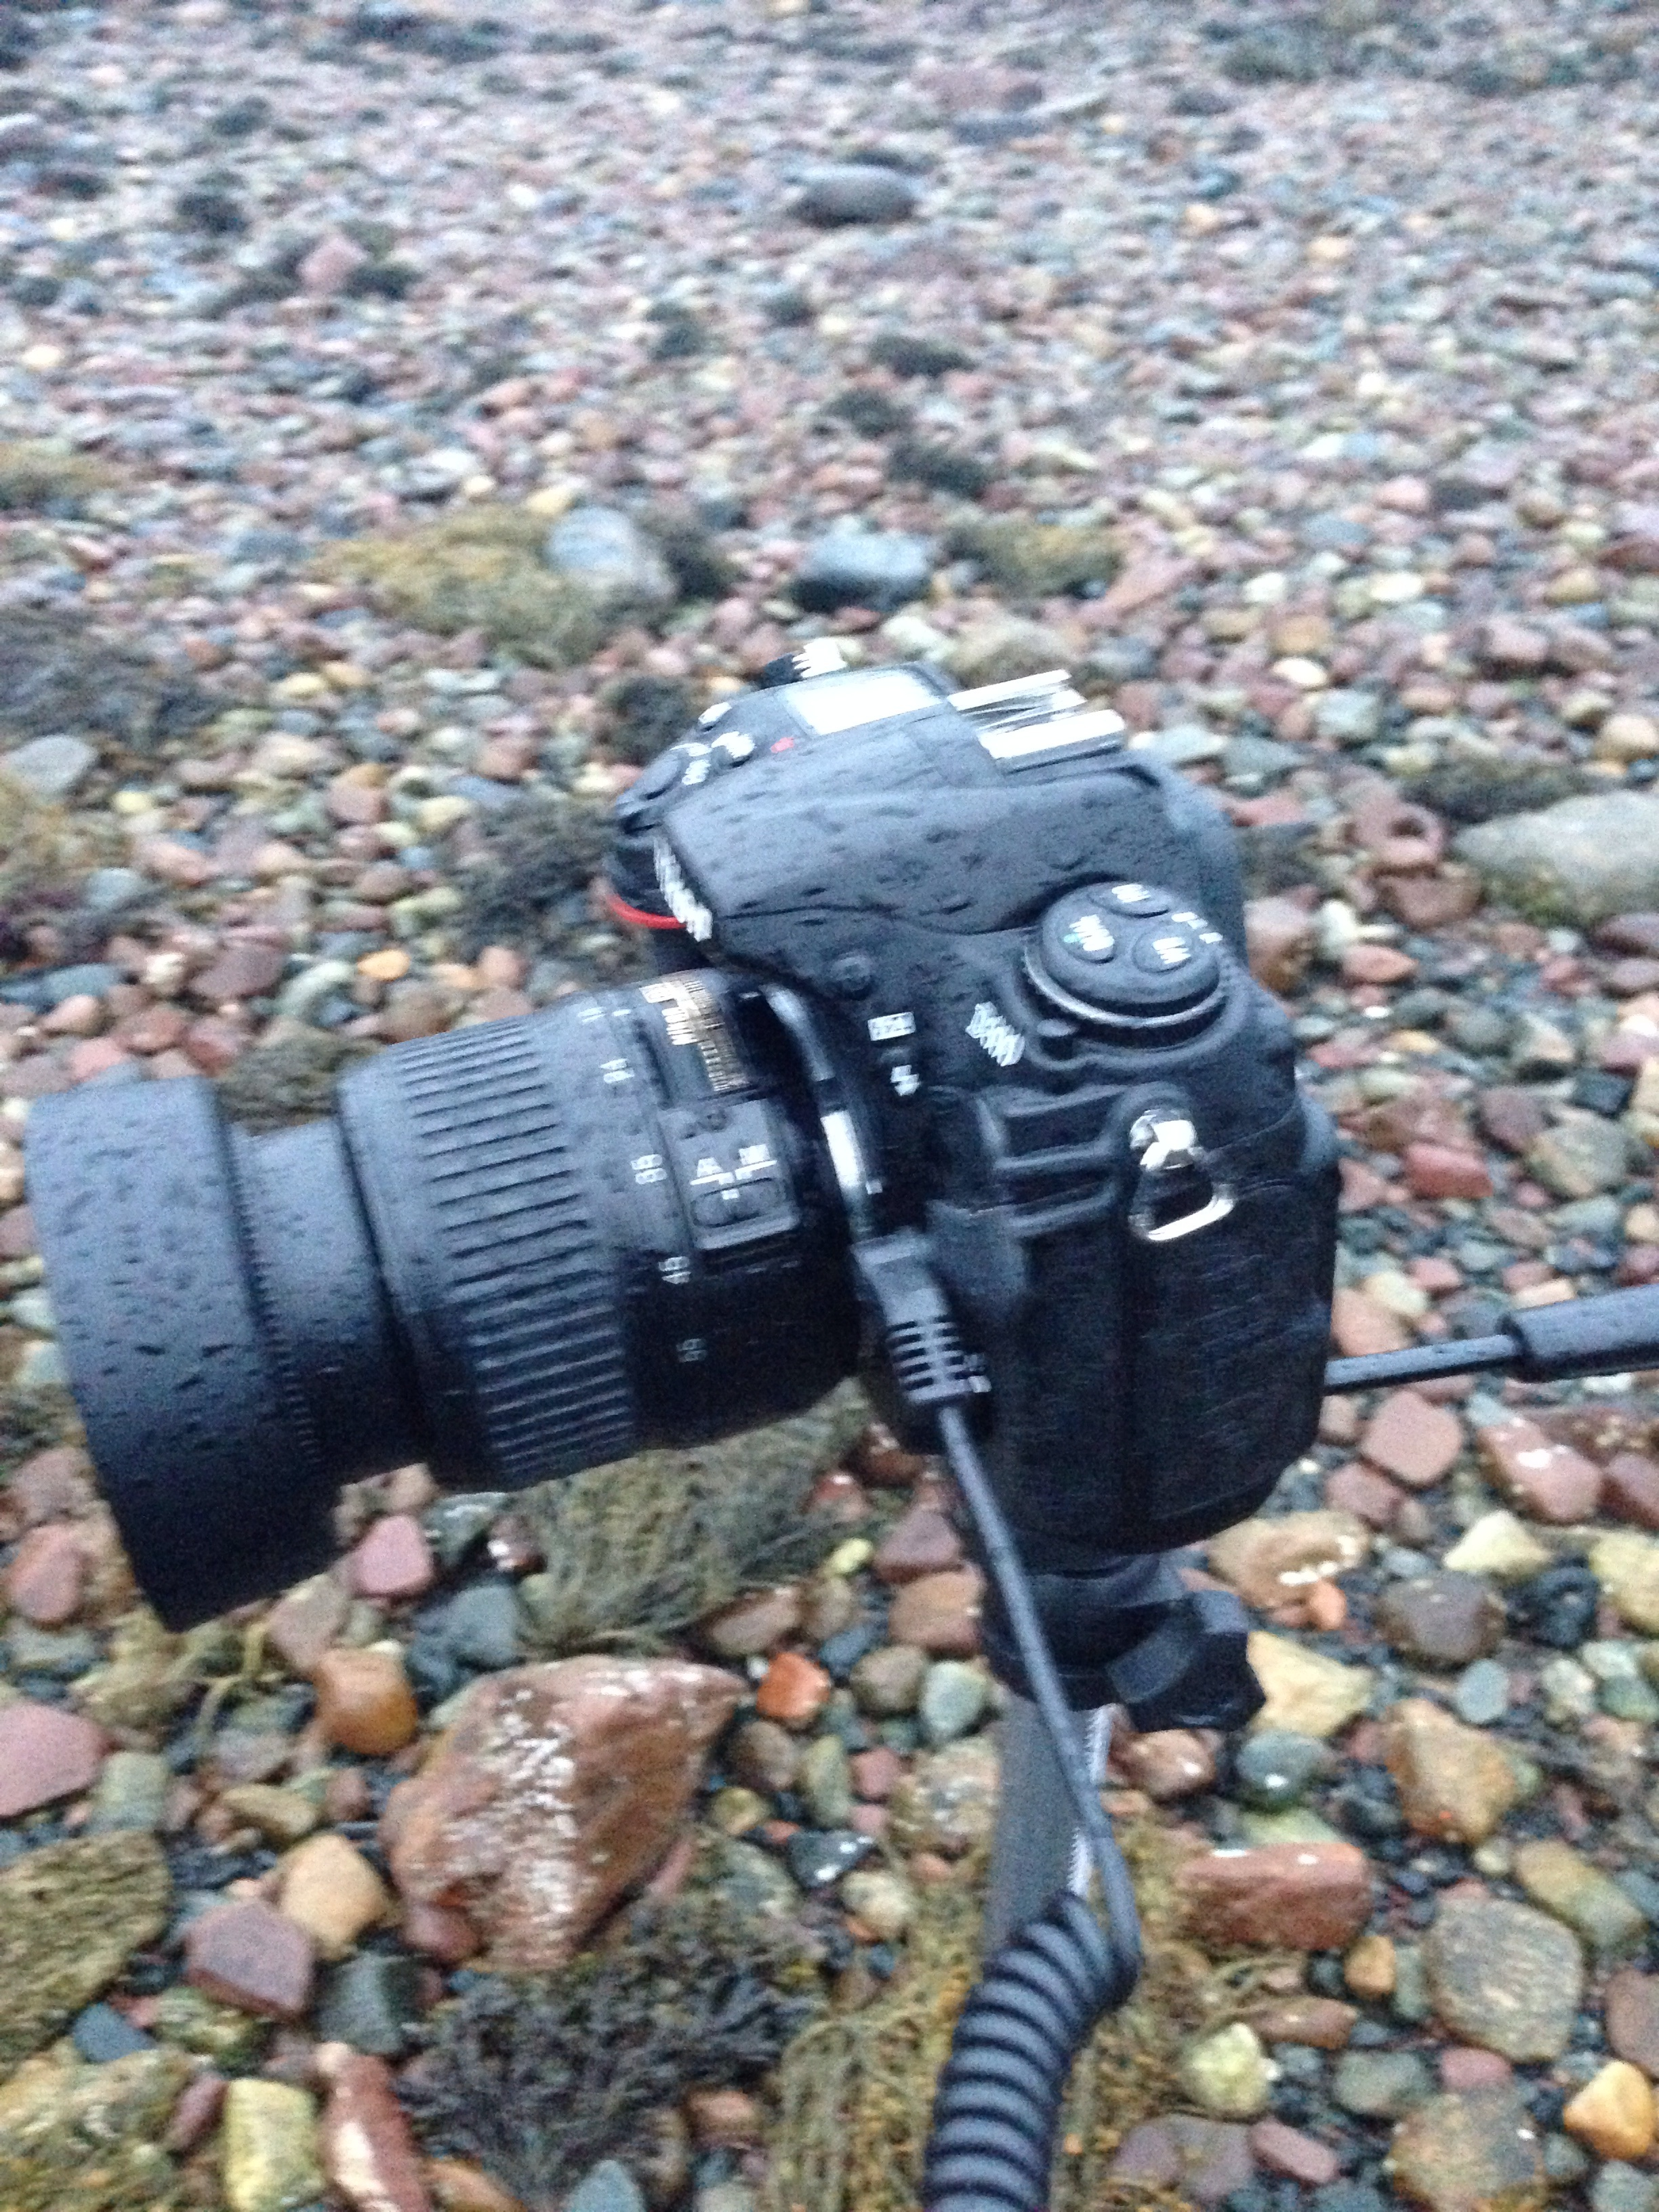 A slightly wet Nikon! (I blame the poor focus on the buffeting wind!)